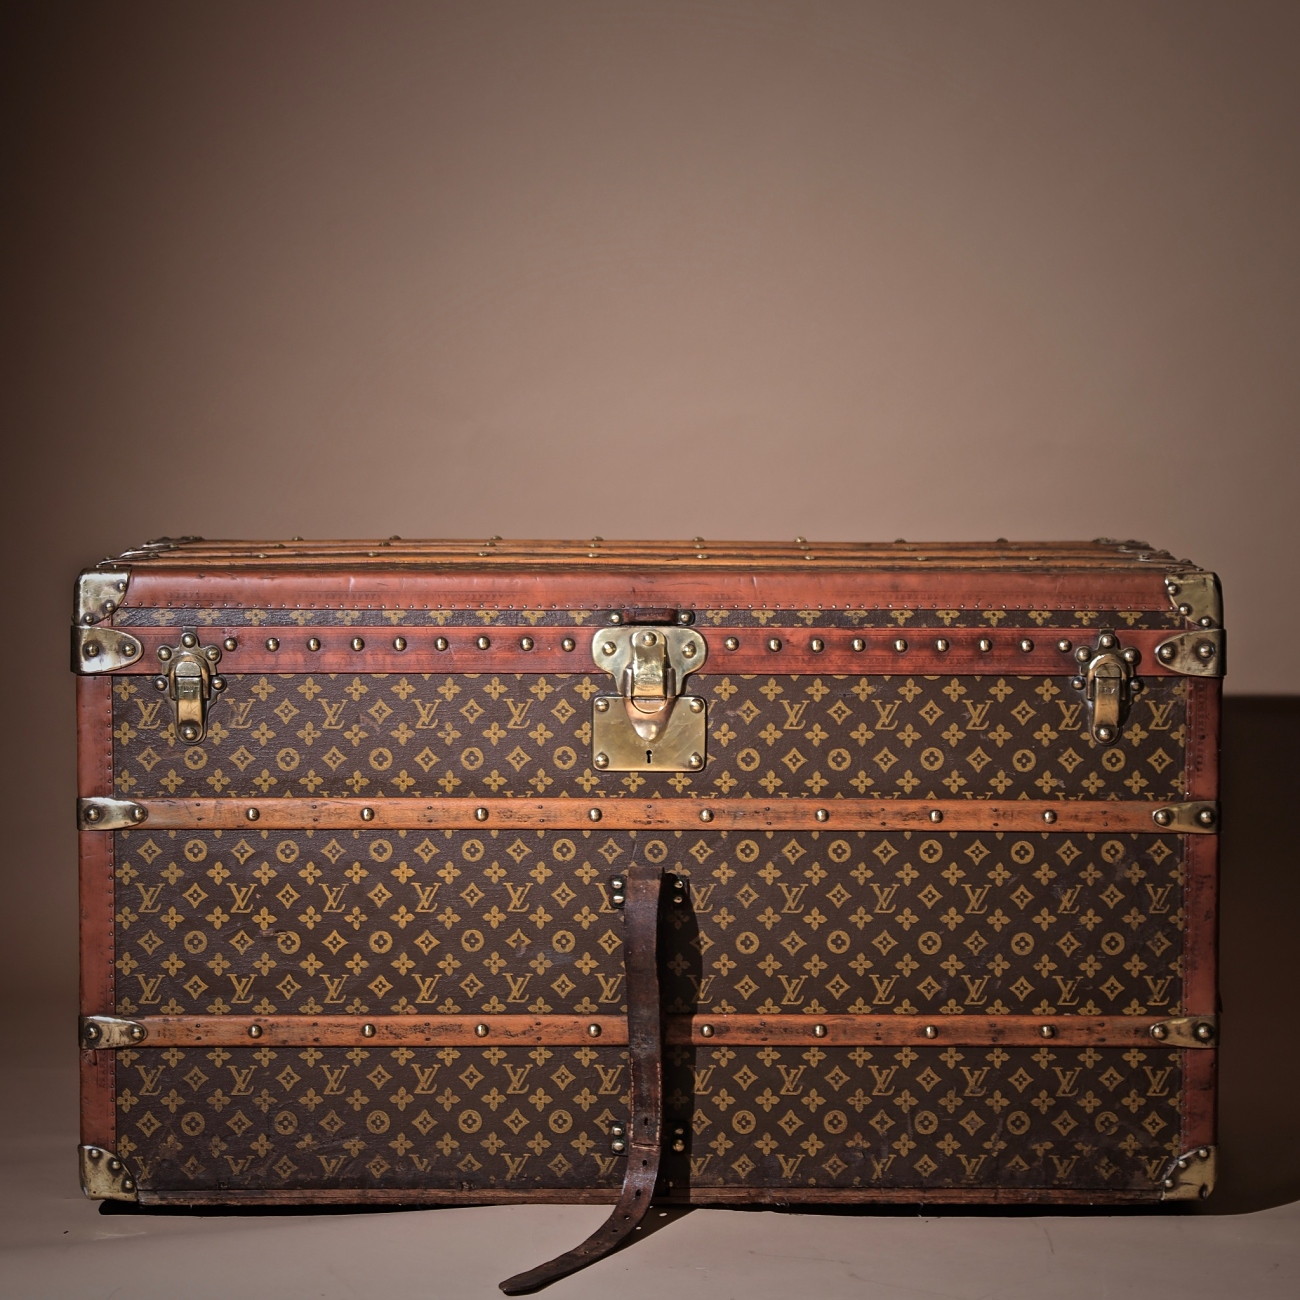 the-well-traveled-trunk-louis-vuitton-thumbnail-product-5712